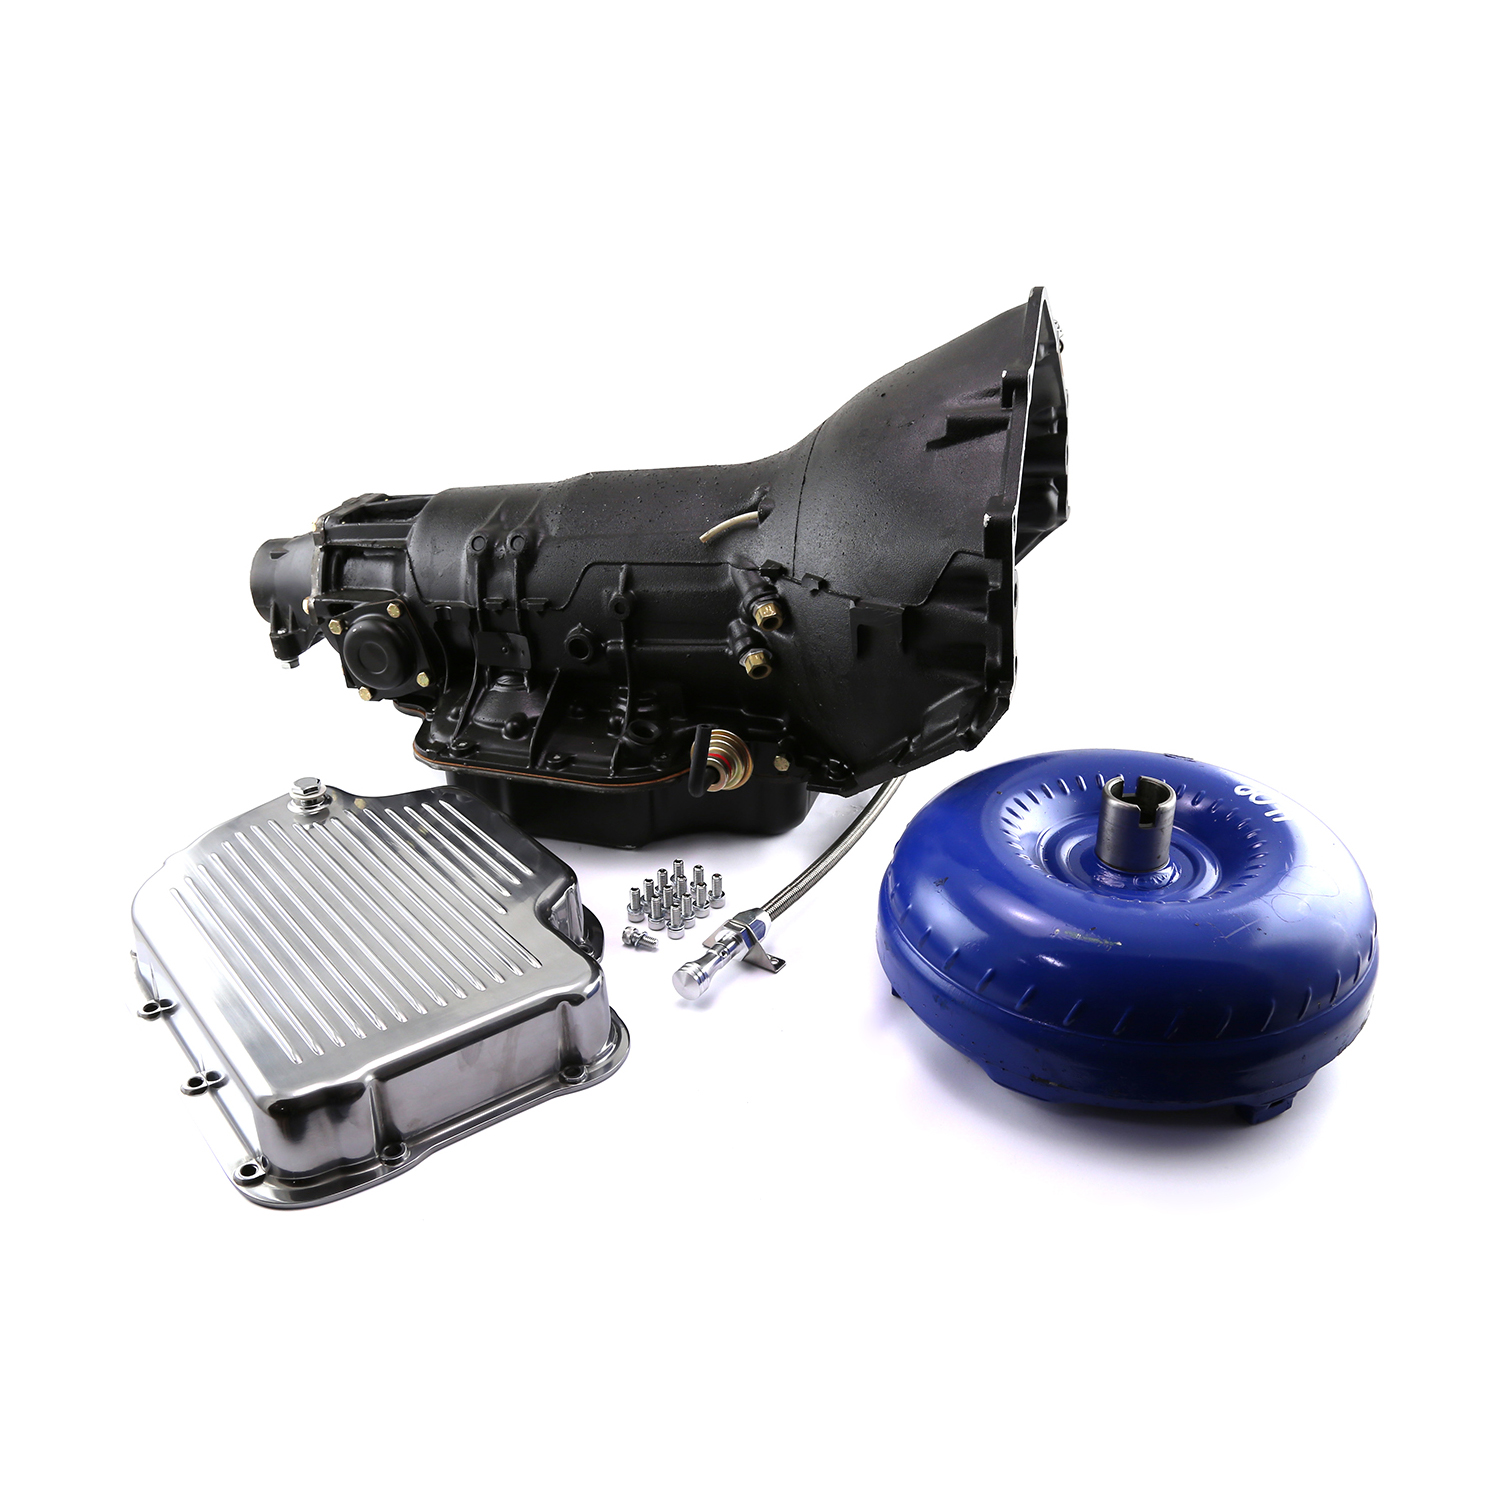 Turbo 350 Chevy Performance Transmission Kit w/ 2700-3000 Stall Converter